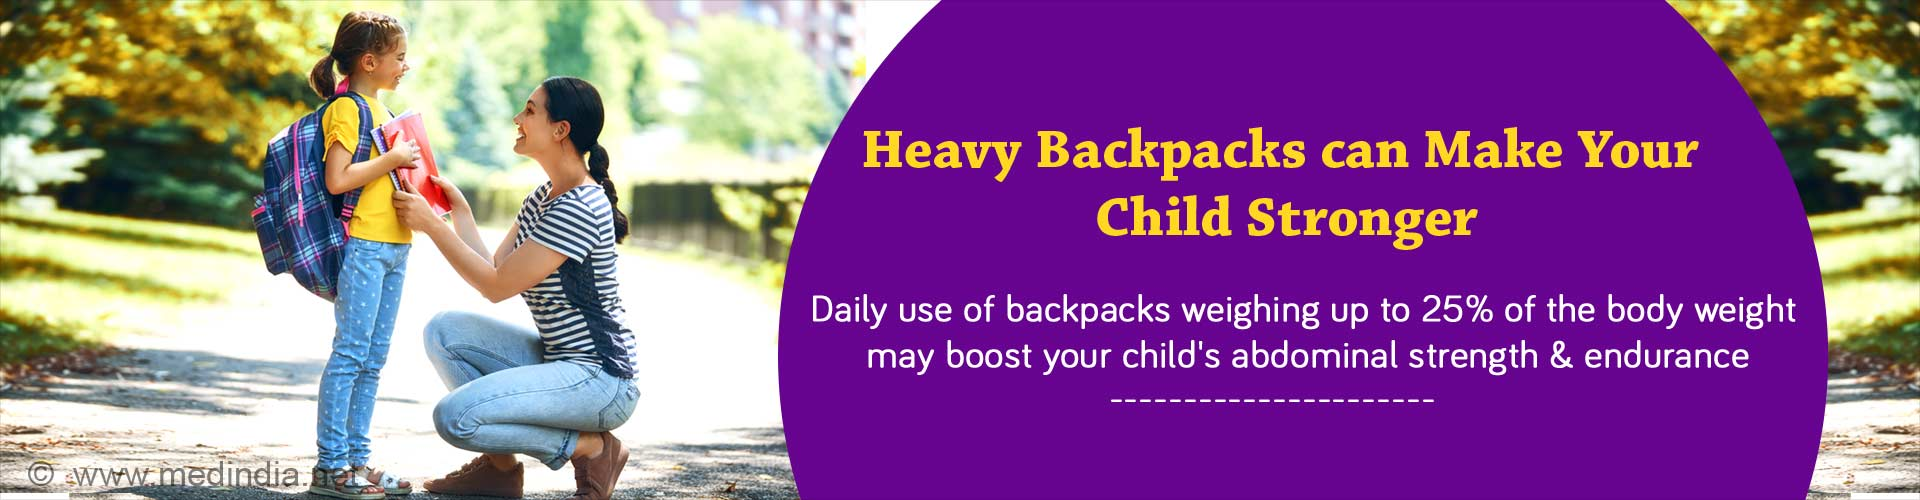 Heavy backpacks can make your child stronger. Daily use of backpacks weighing up to 25% of the body weight may boost your child's abdominal strength and endurance.